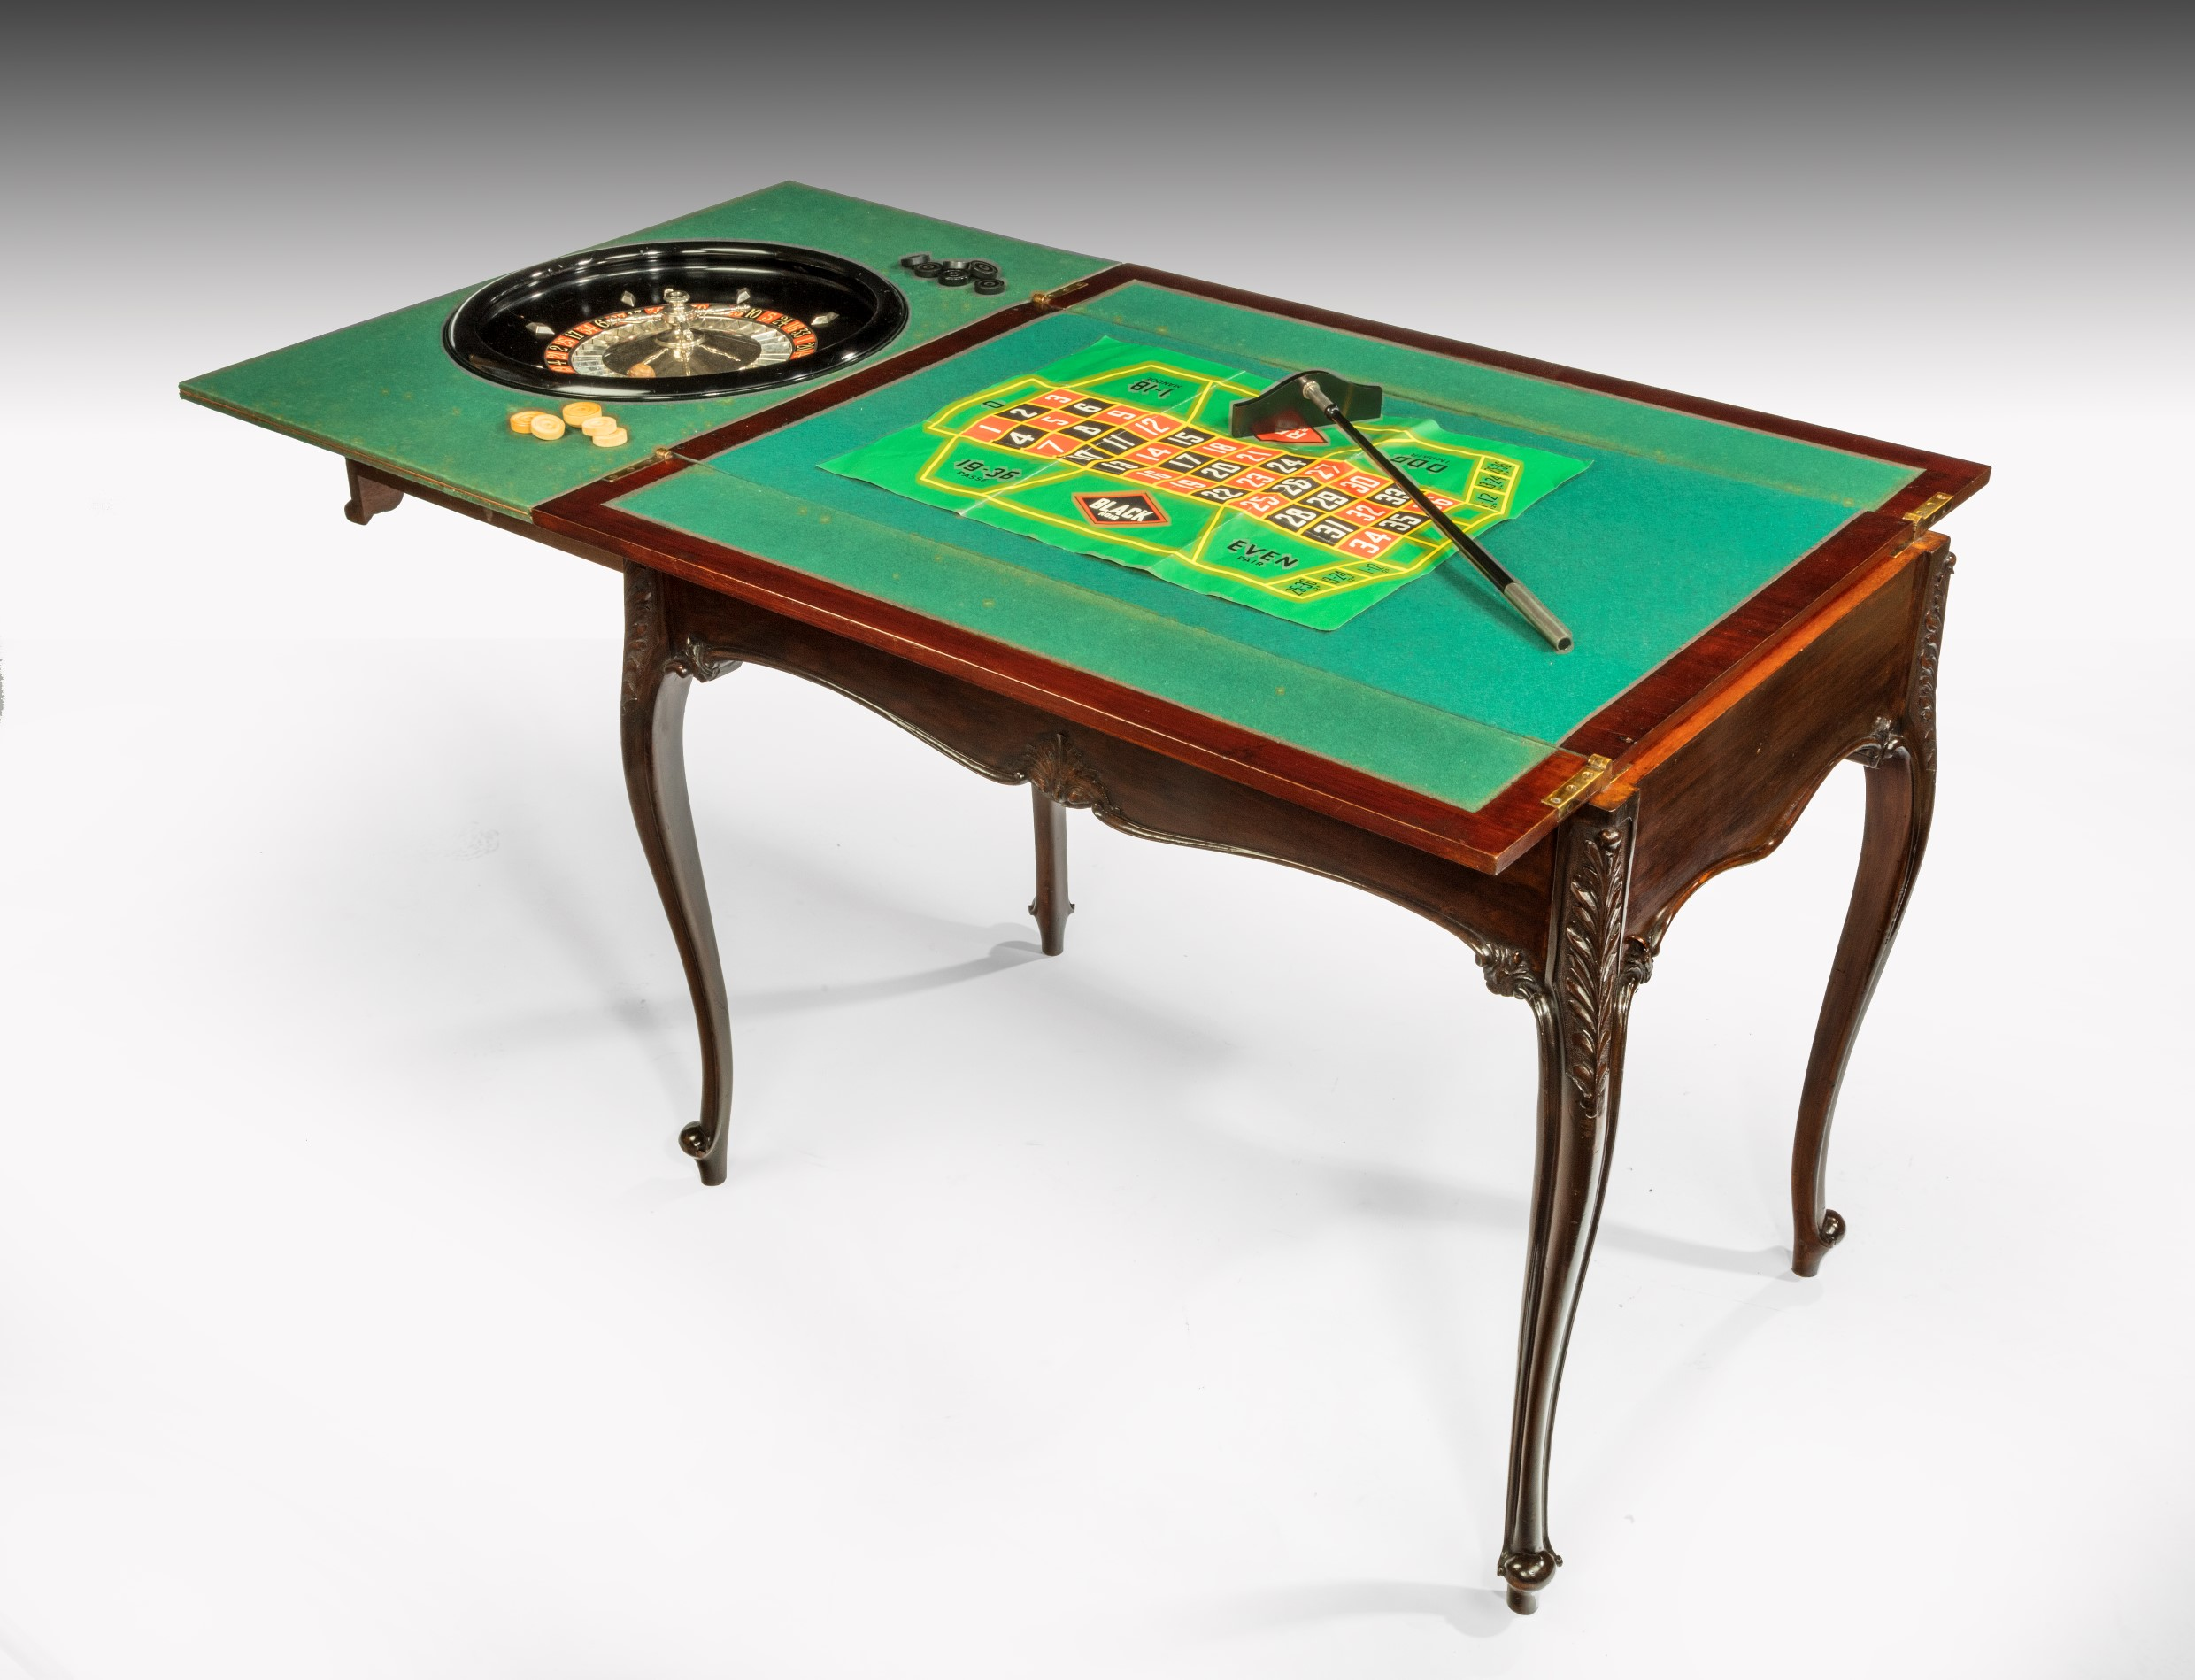 Games Table with Roulette Summers Davis Antiques & Interiors